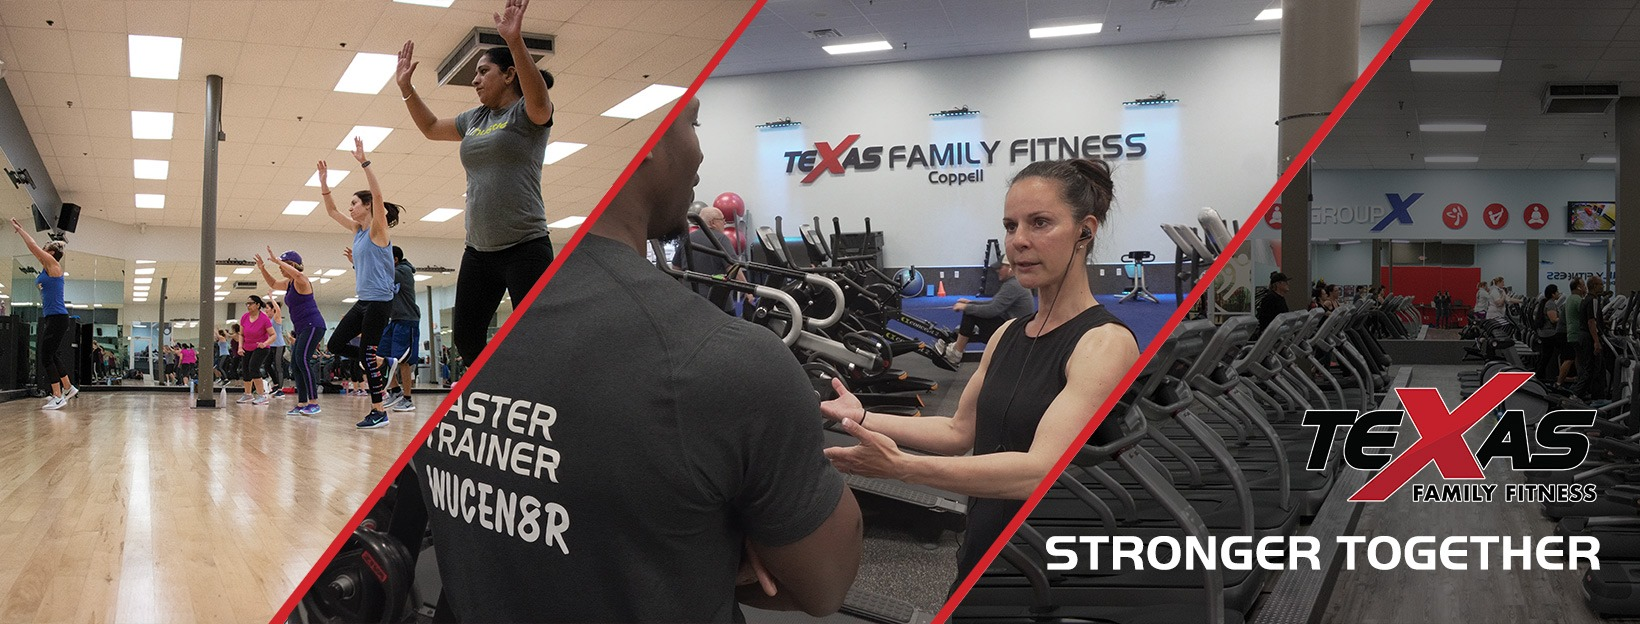 Texas Family Fitness reviews | Fitness & Instruction at 120 S Denton Tap Rd - Coppell TX